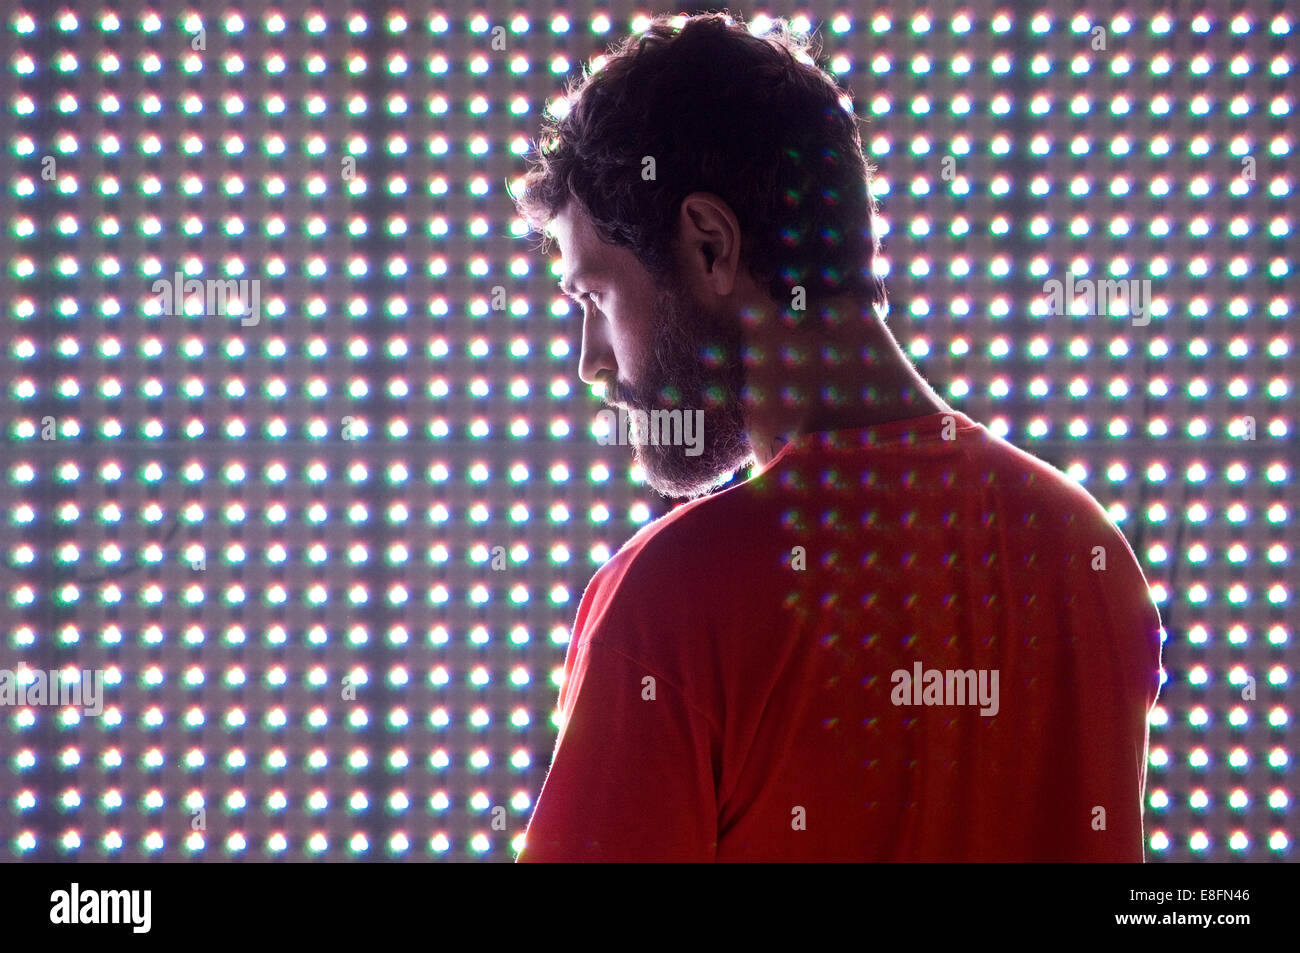 Man standing in front of led screen - Stock Image